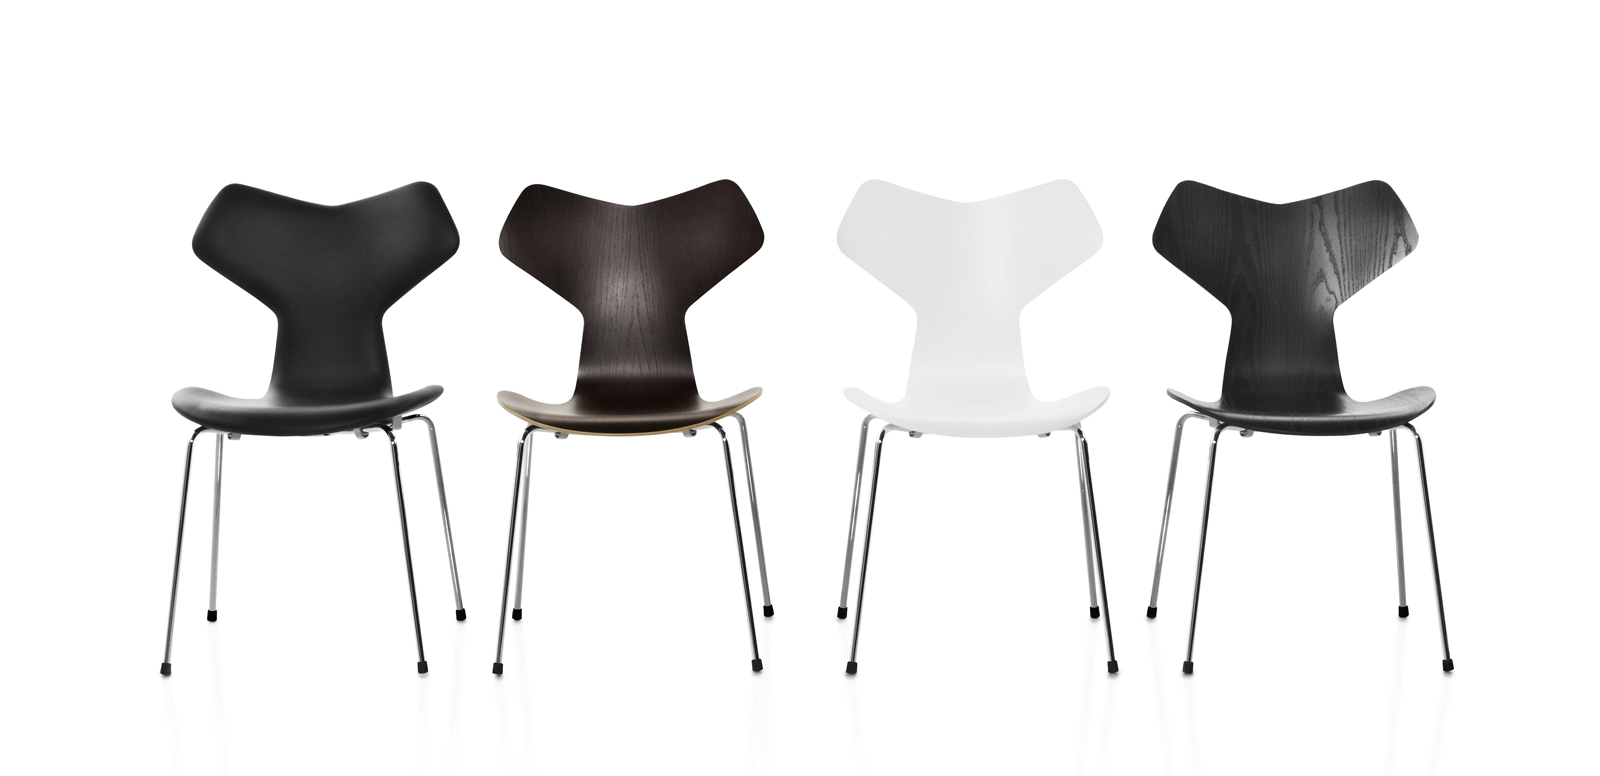 Grand Prix chairs by Arne Jacobsen for Fritz Hansen